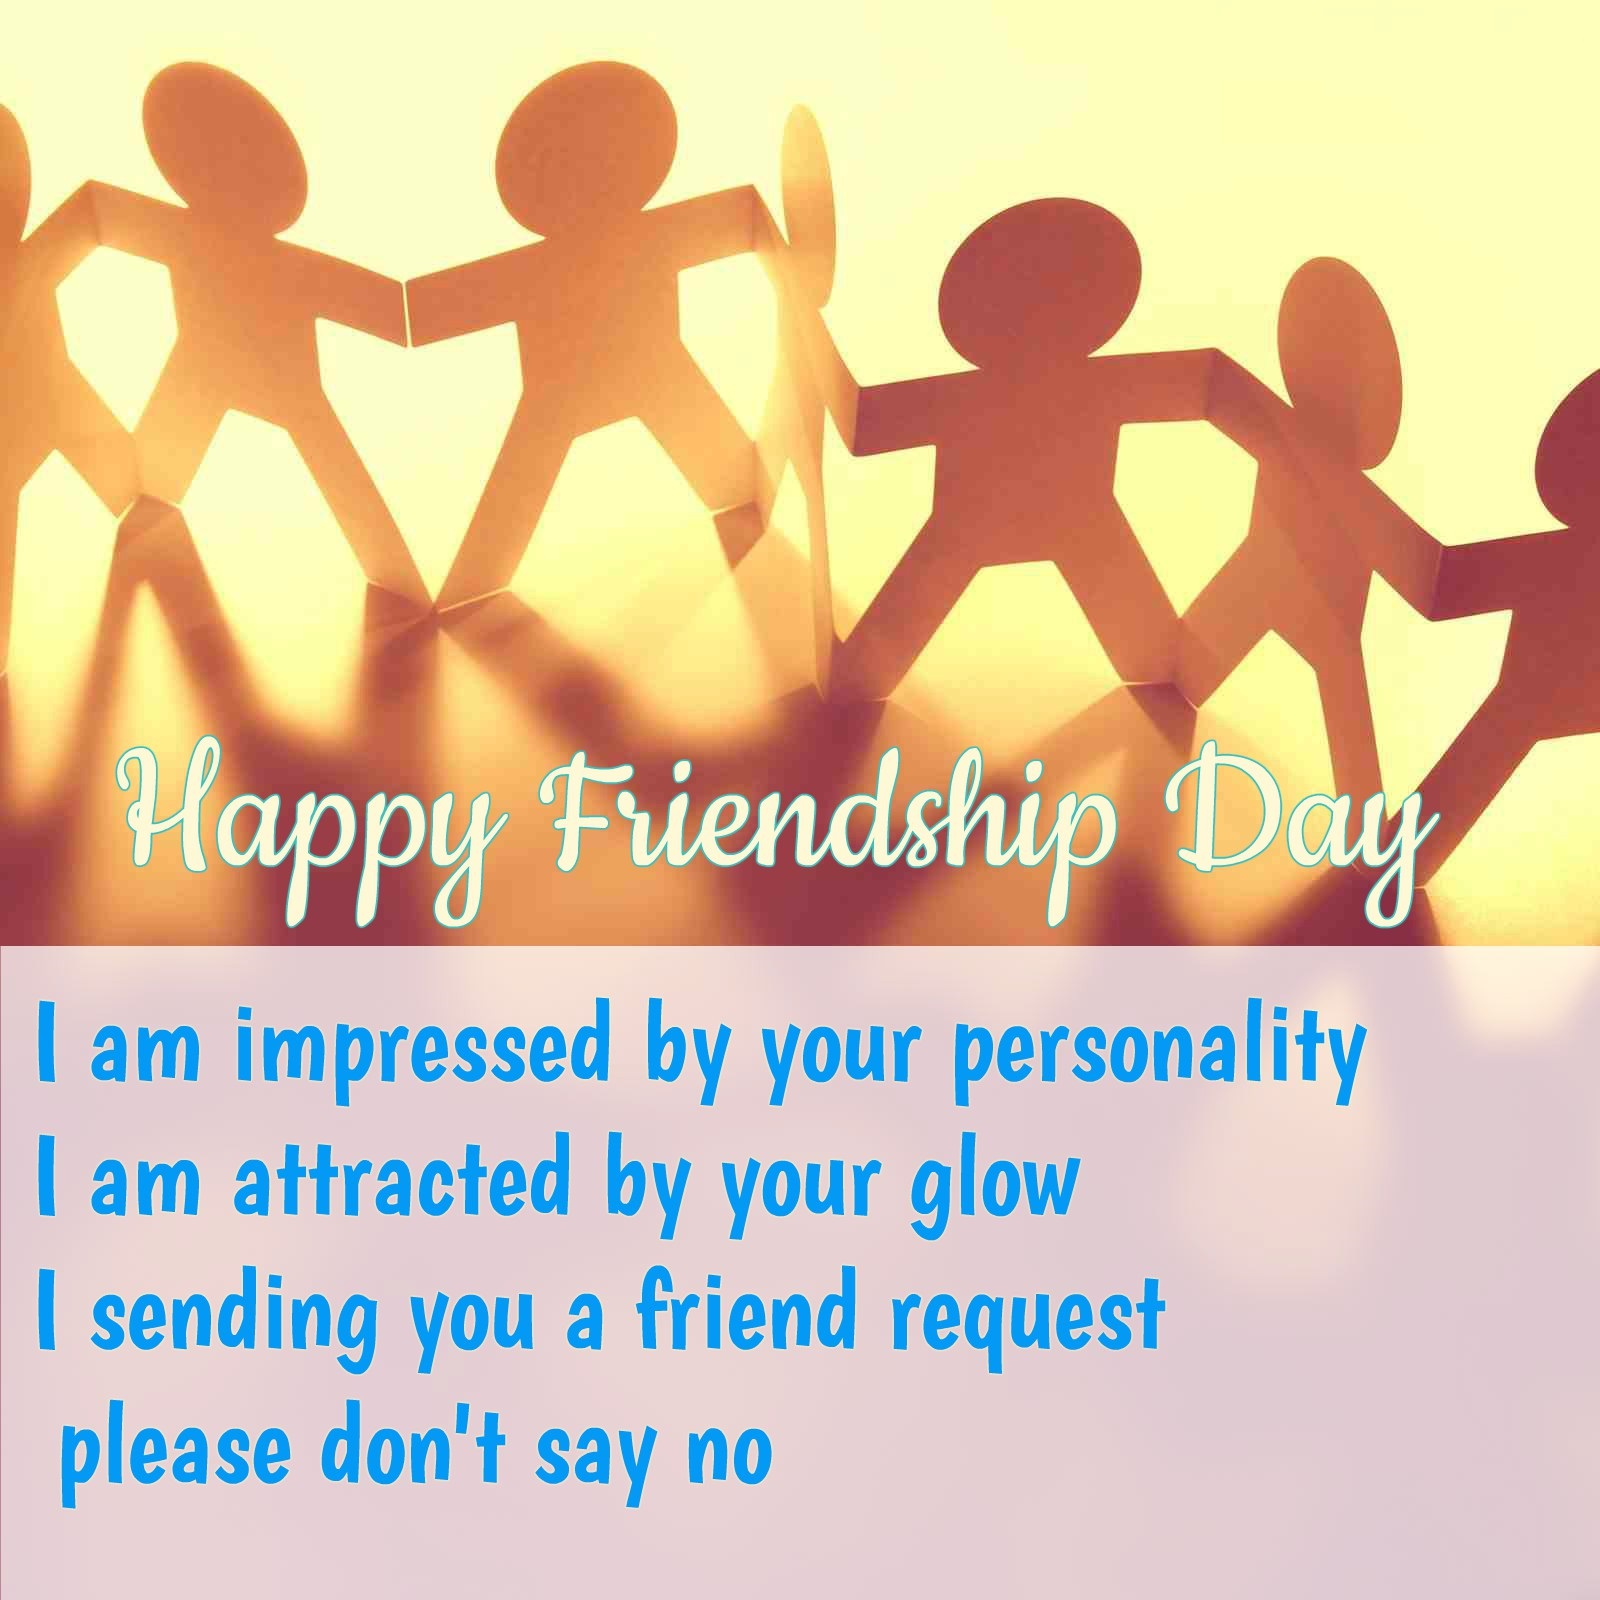 Happy Friendship Day Quotes Motivational